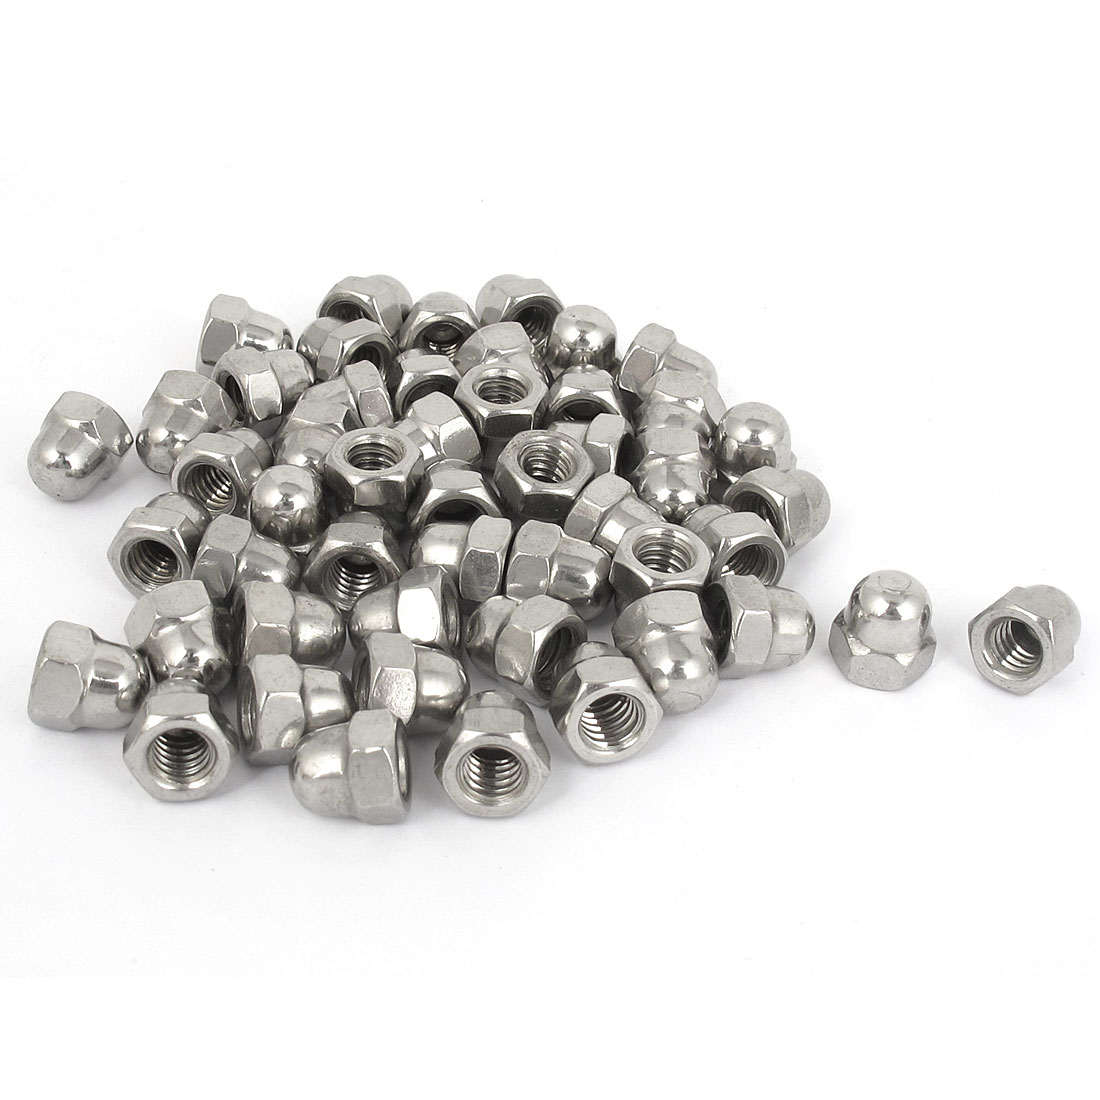 "1/4""-20 Stainless Steel Dome Head Cap Acorn Hex Nuts Silver Tone 50Pcs"